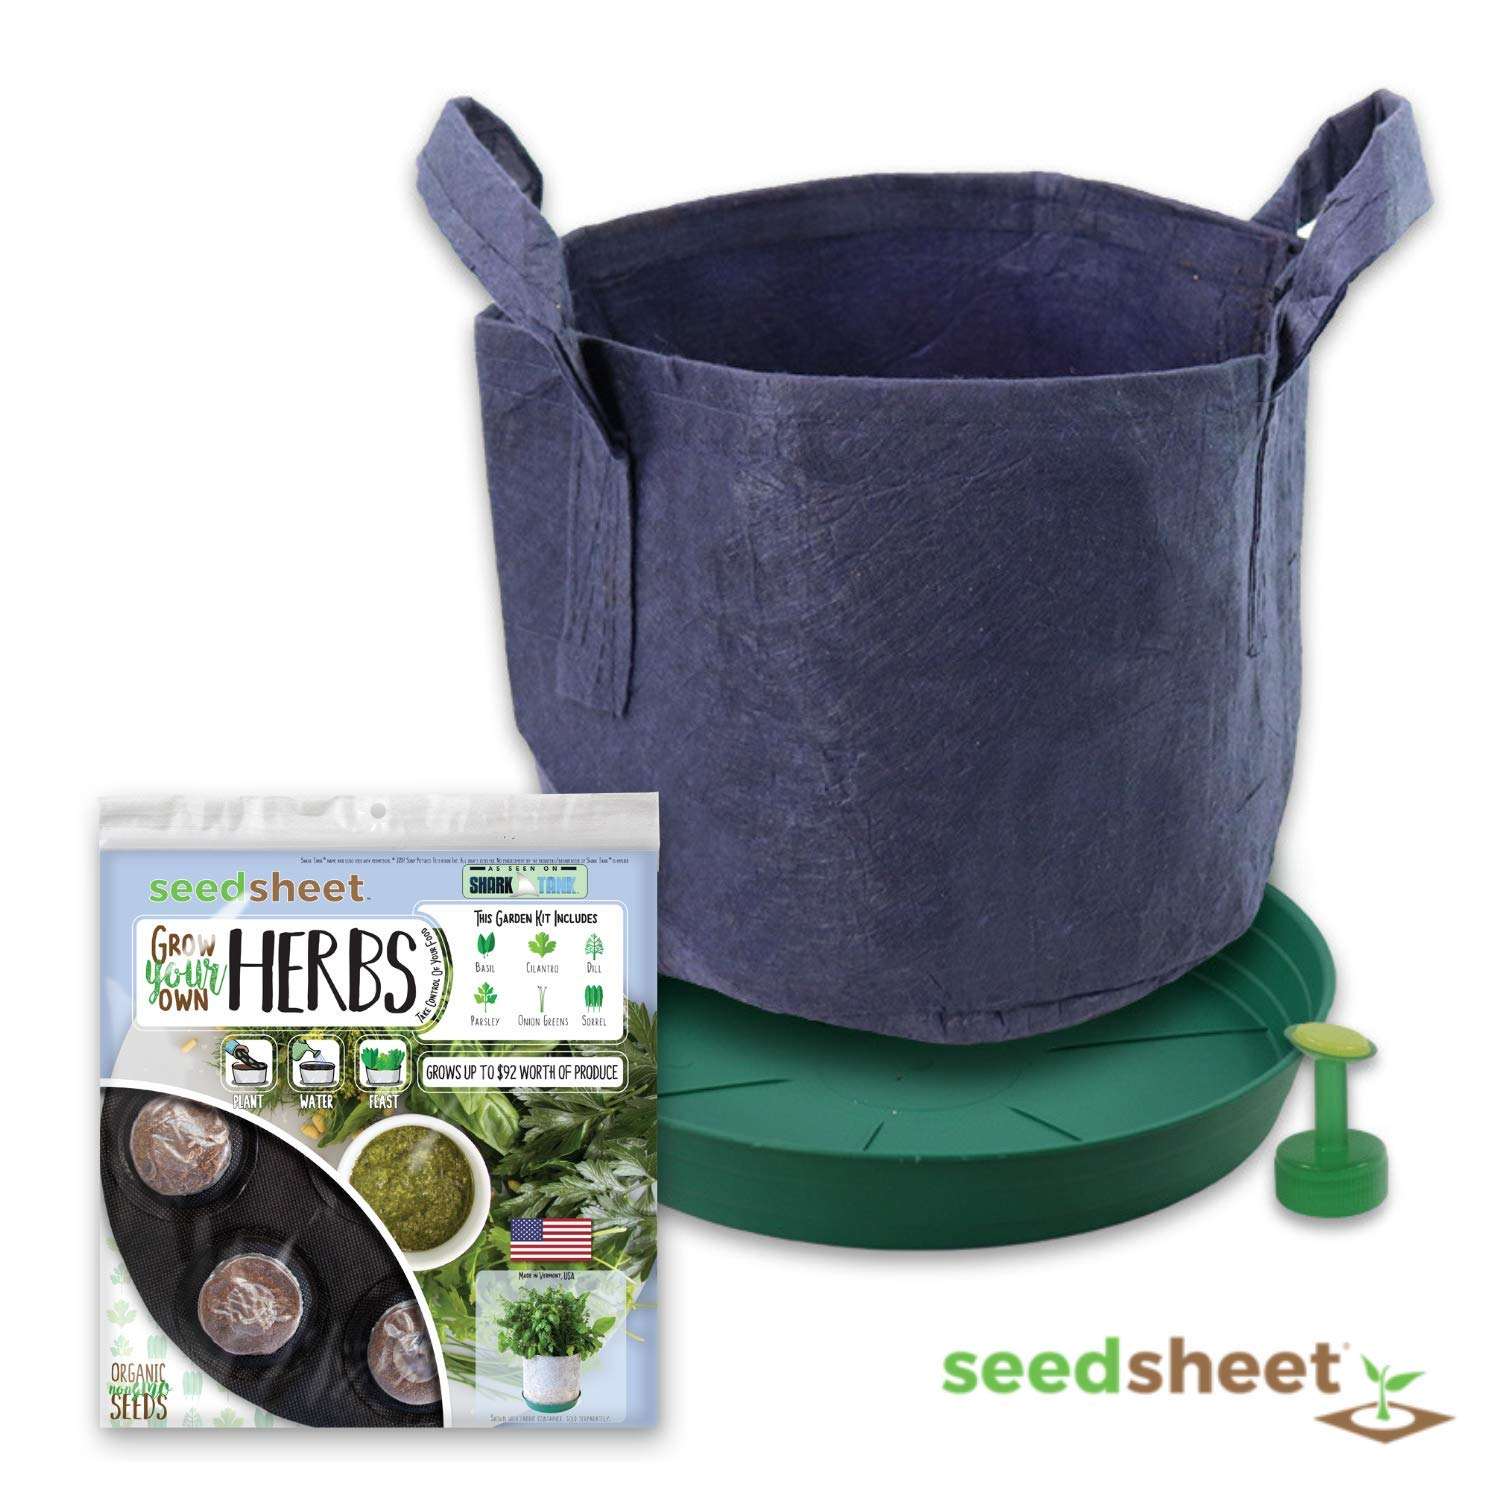 Home Garden Seeds - Seedsheet Grow Your Own Organic Gardening Pods - Eco Friendly Homemade Ingredients with Fabric Container - Partial Kit (Herbs)